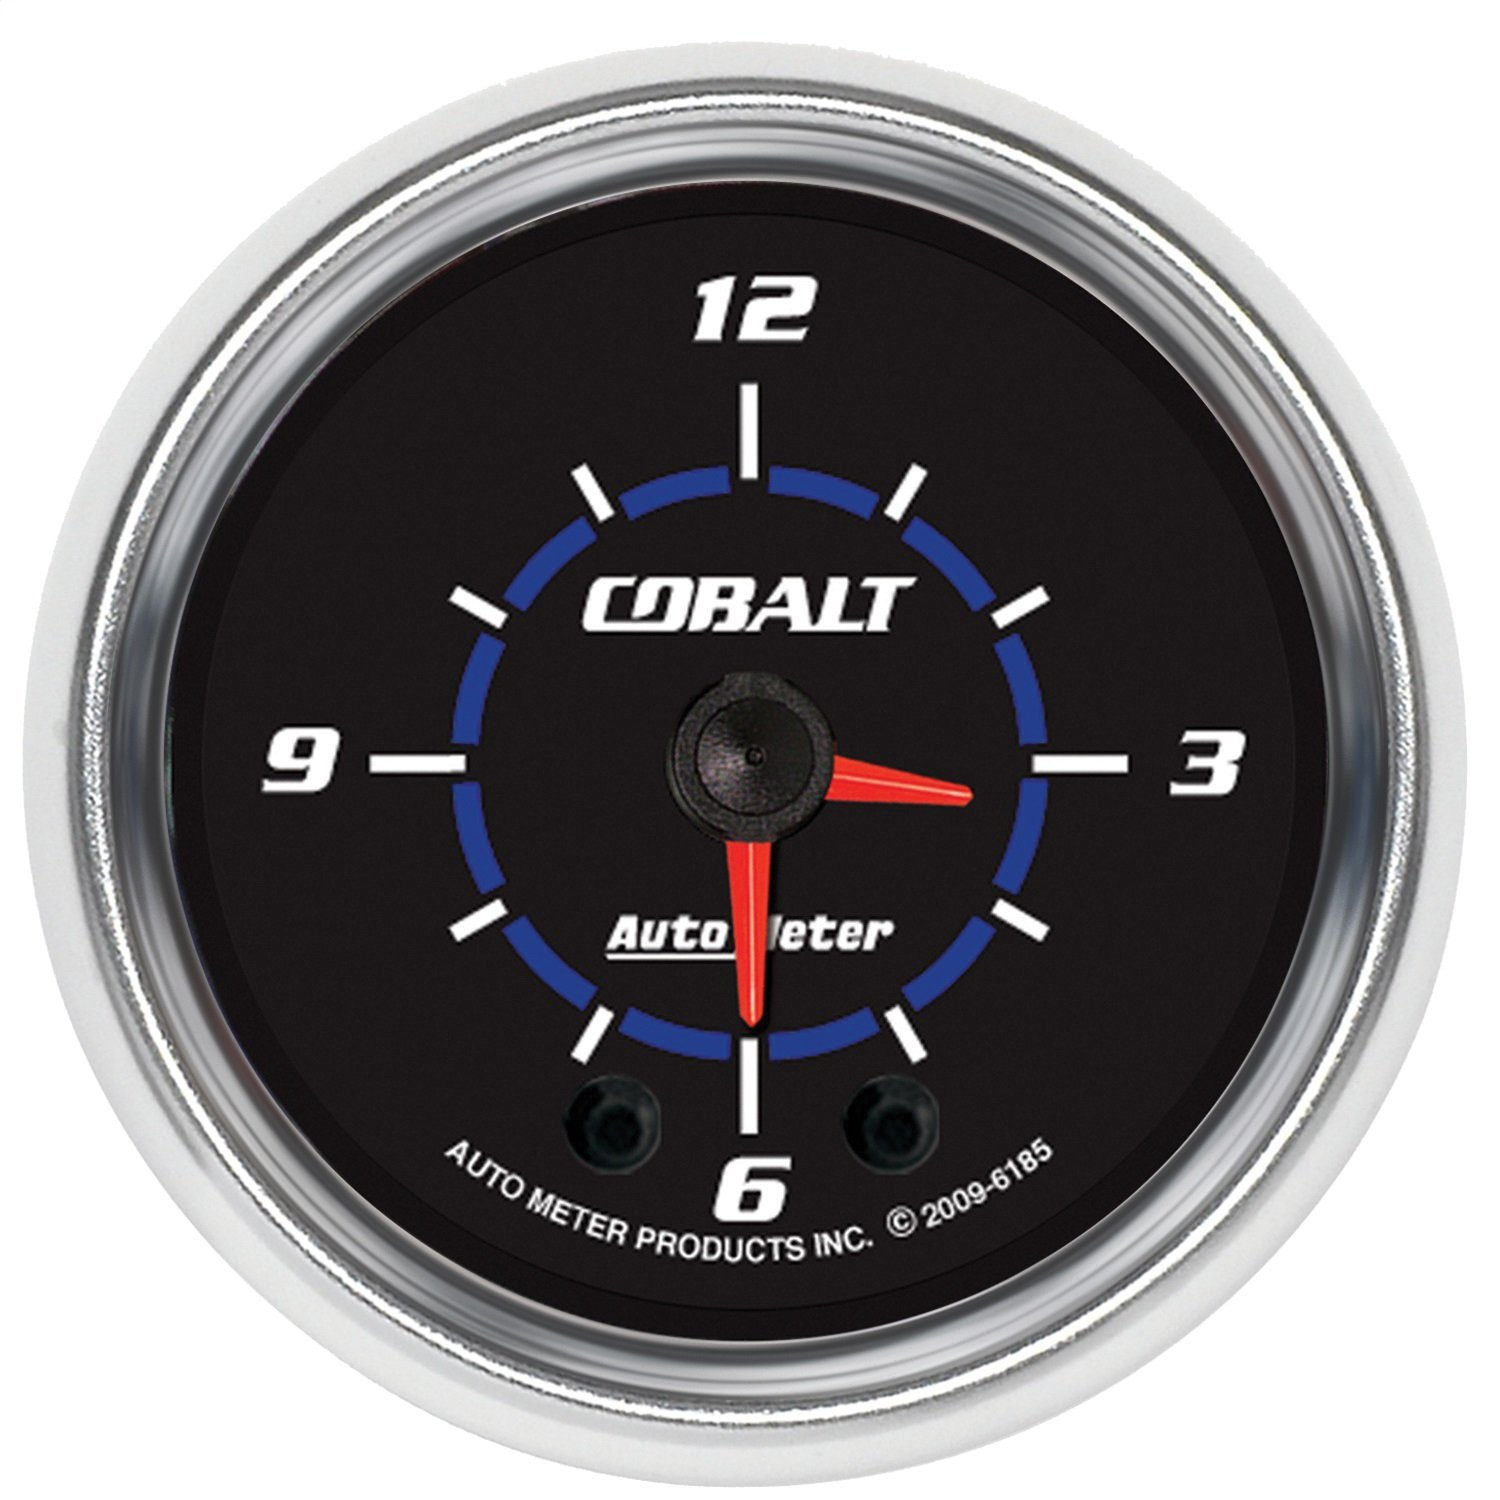 Auto Meter 6185 Cobalt 2'' Analog Illuminated Clock Gauge